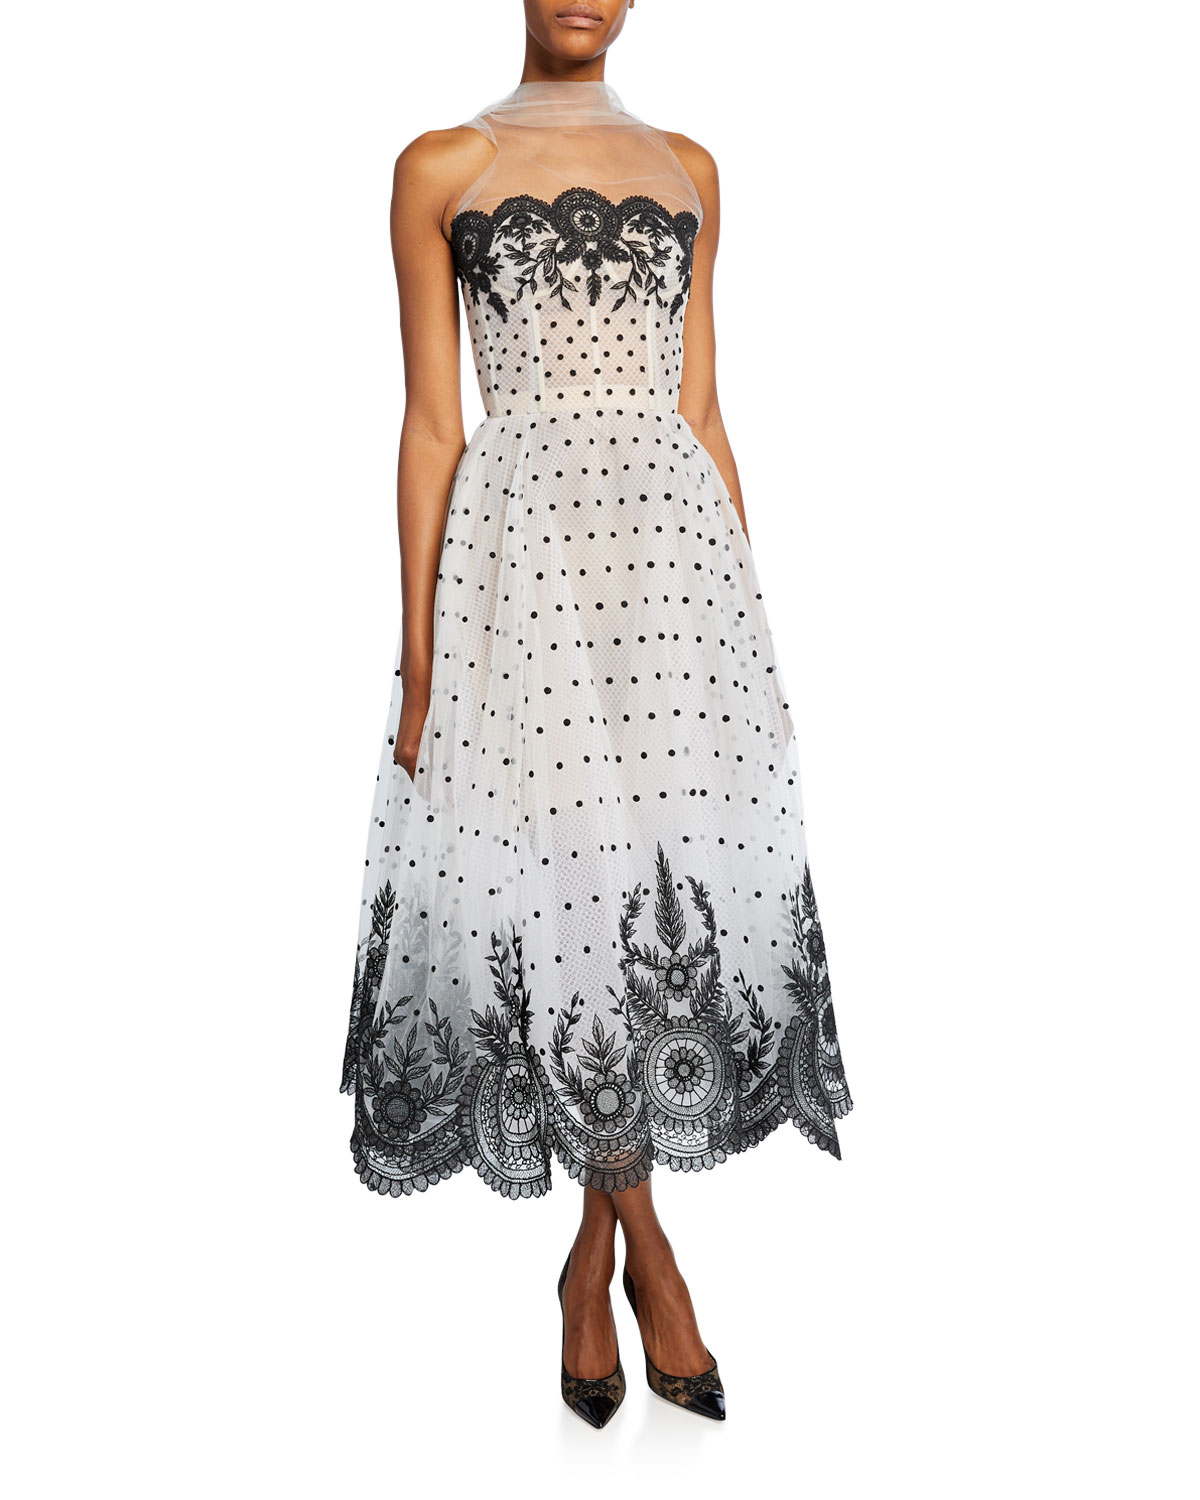 Oscar De La Renta Dresses STRAPLESS LACE EMBROIDERED DRESS